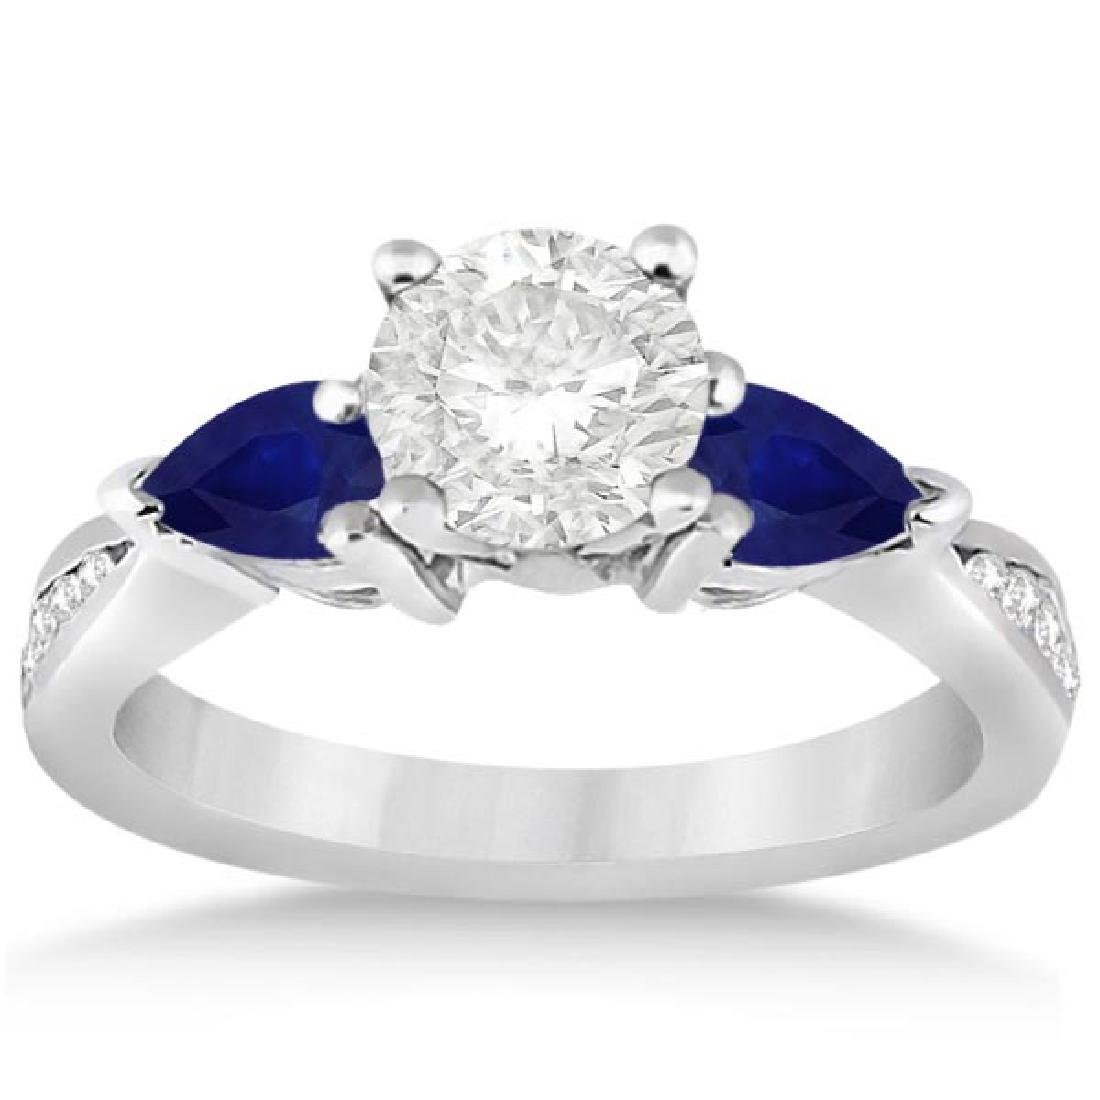 Diamond and Pear Blue Sapphire Engagement Ring Palladiu